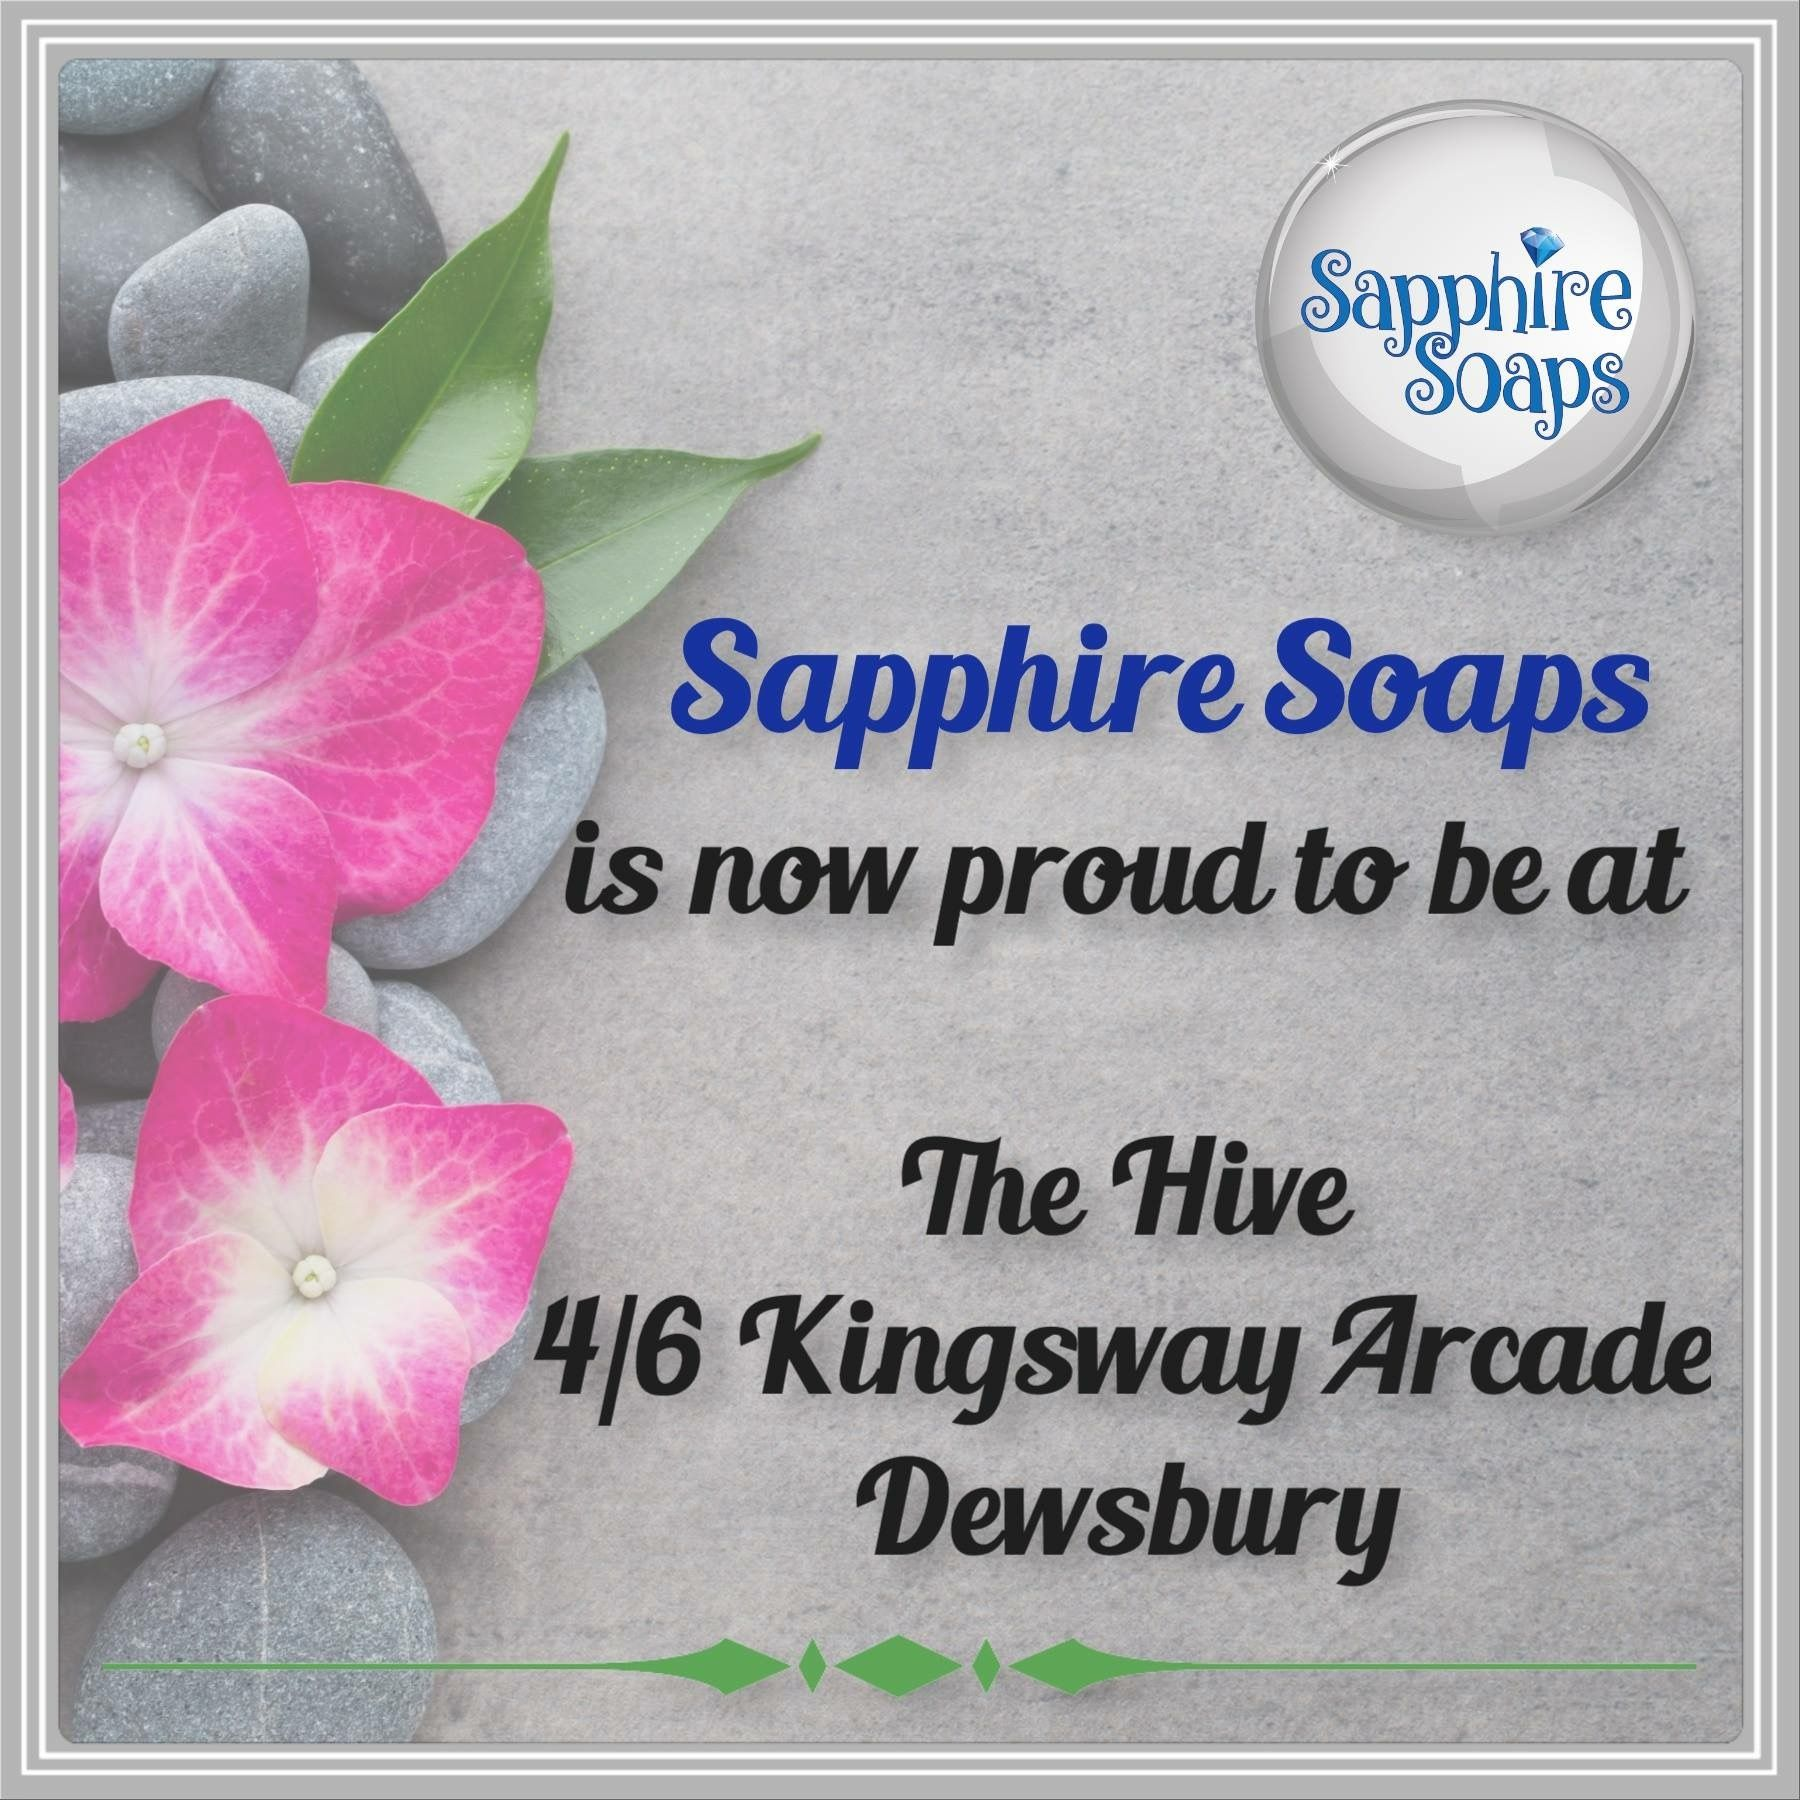 Sapphire Soaps Is Very Pleased To Now Have Their Soaps Available To